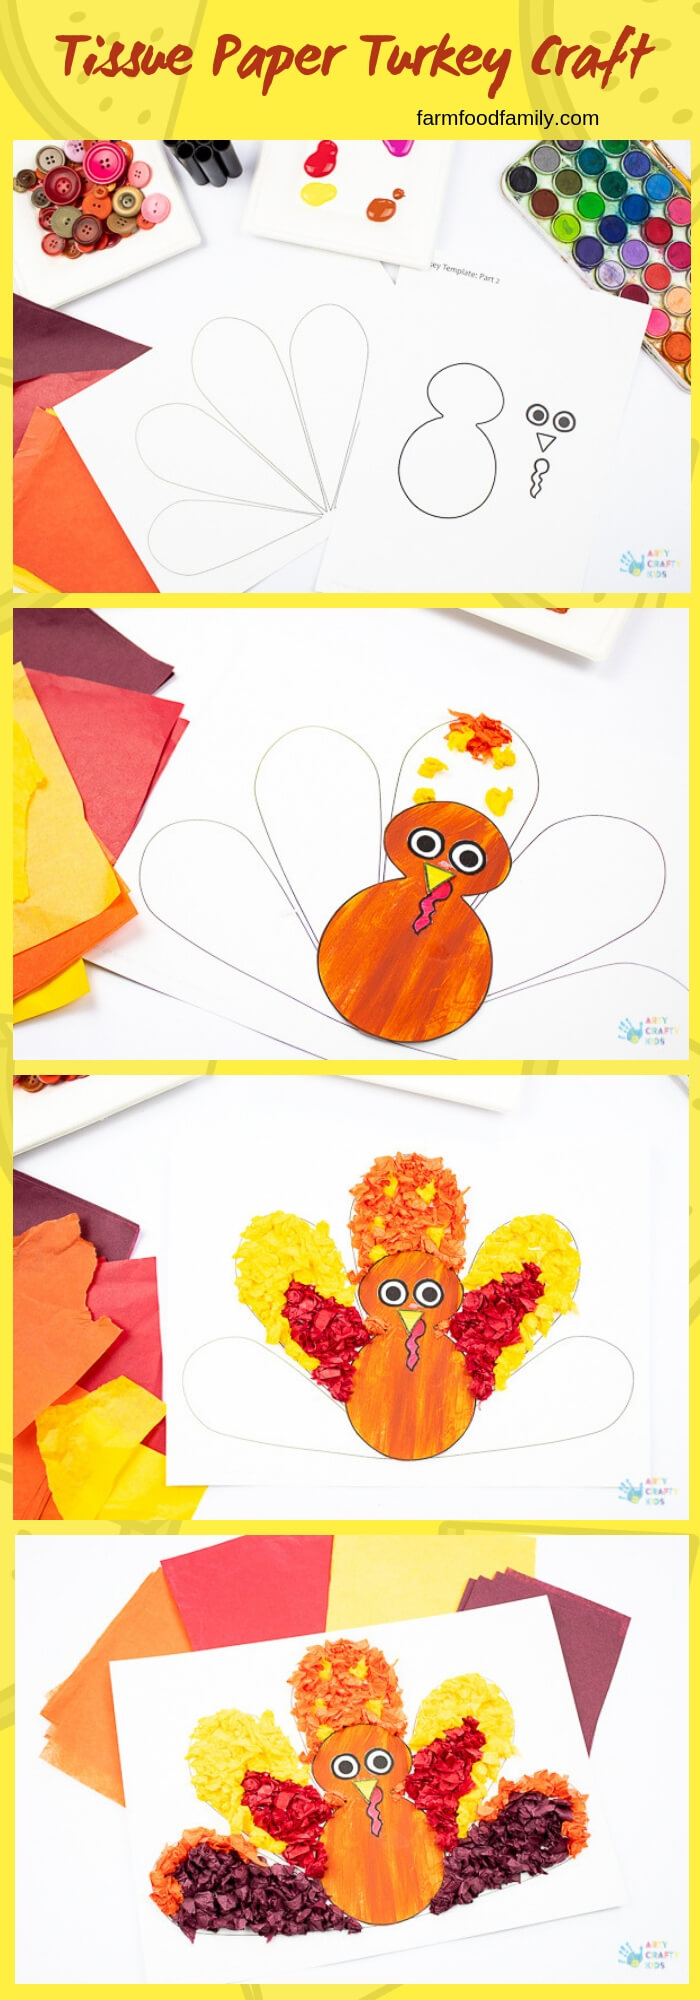 Tissue Paper Turkey Craft | Simple Ideas for Kids' Crafts for Thanksgiving - FarmFoodFamily.com